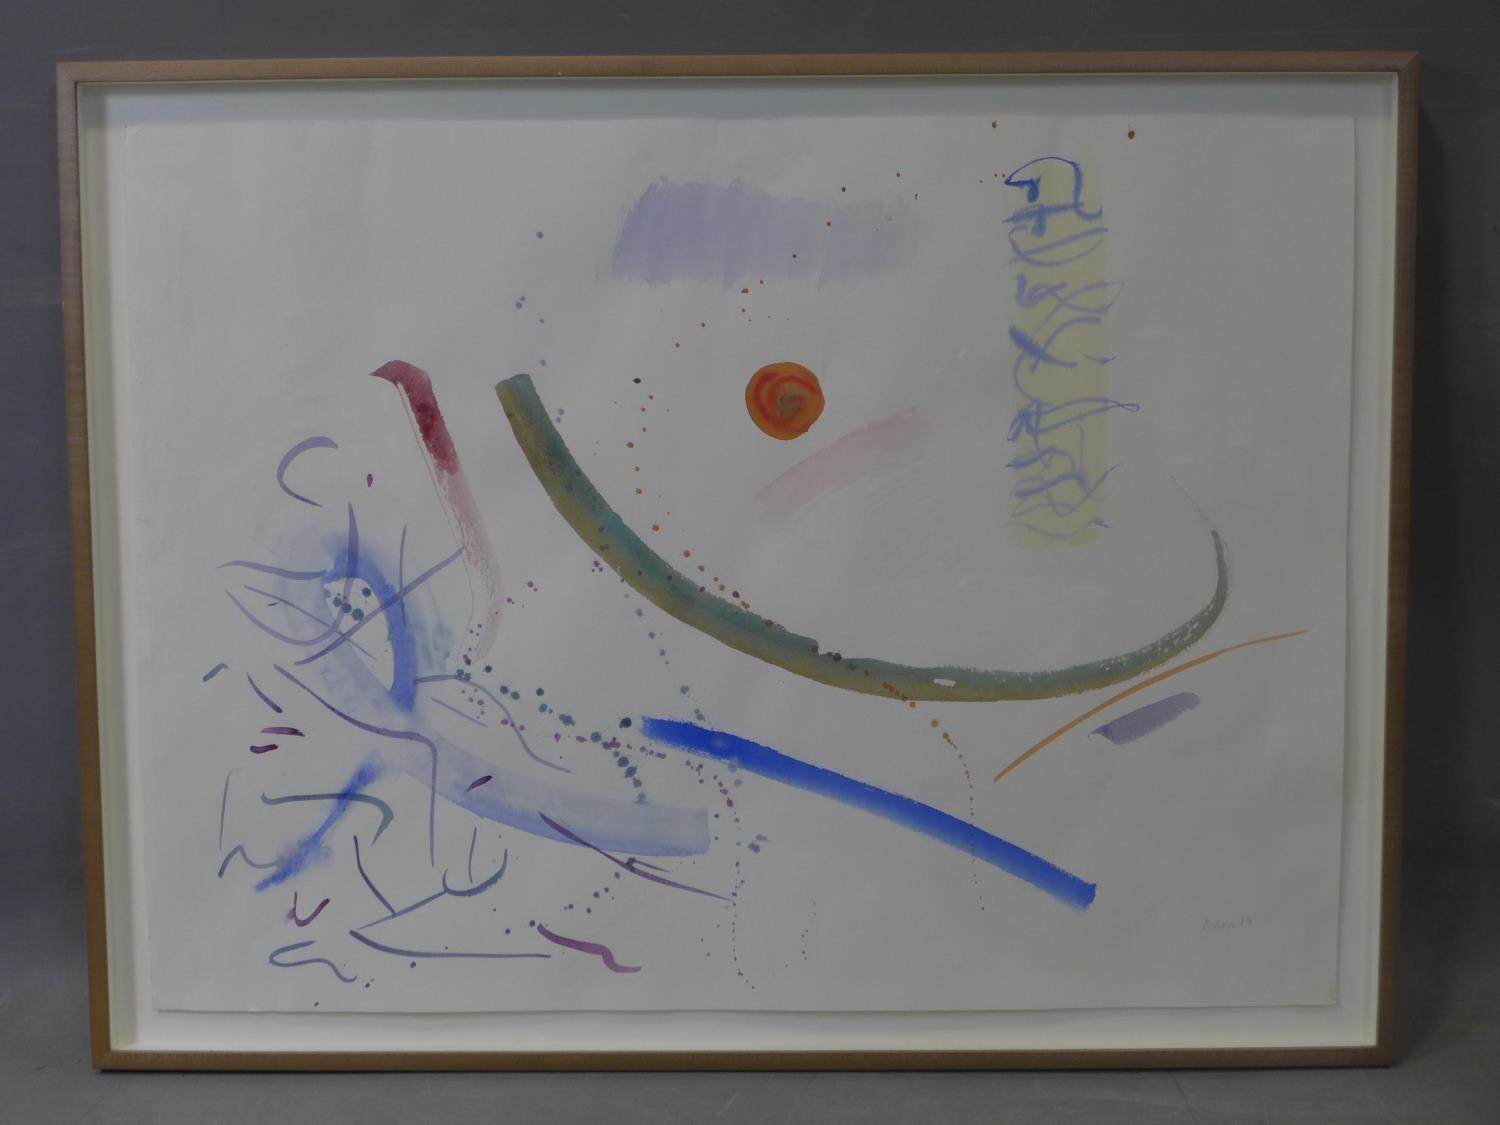 Lot 101 - Hermione Holmes (20th century), abstract study, watercolour, signed 'Mani 87' in pencil to lower